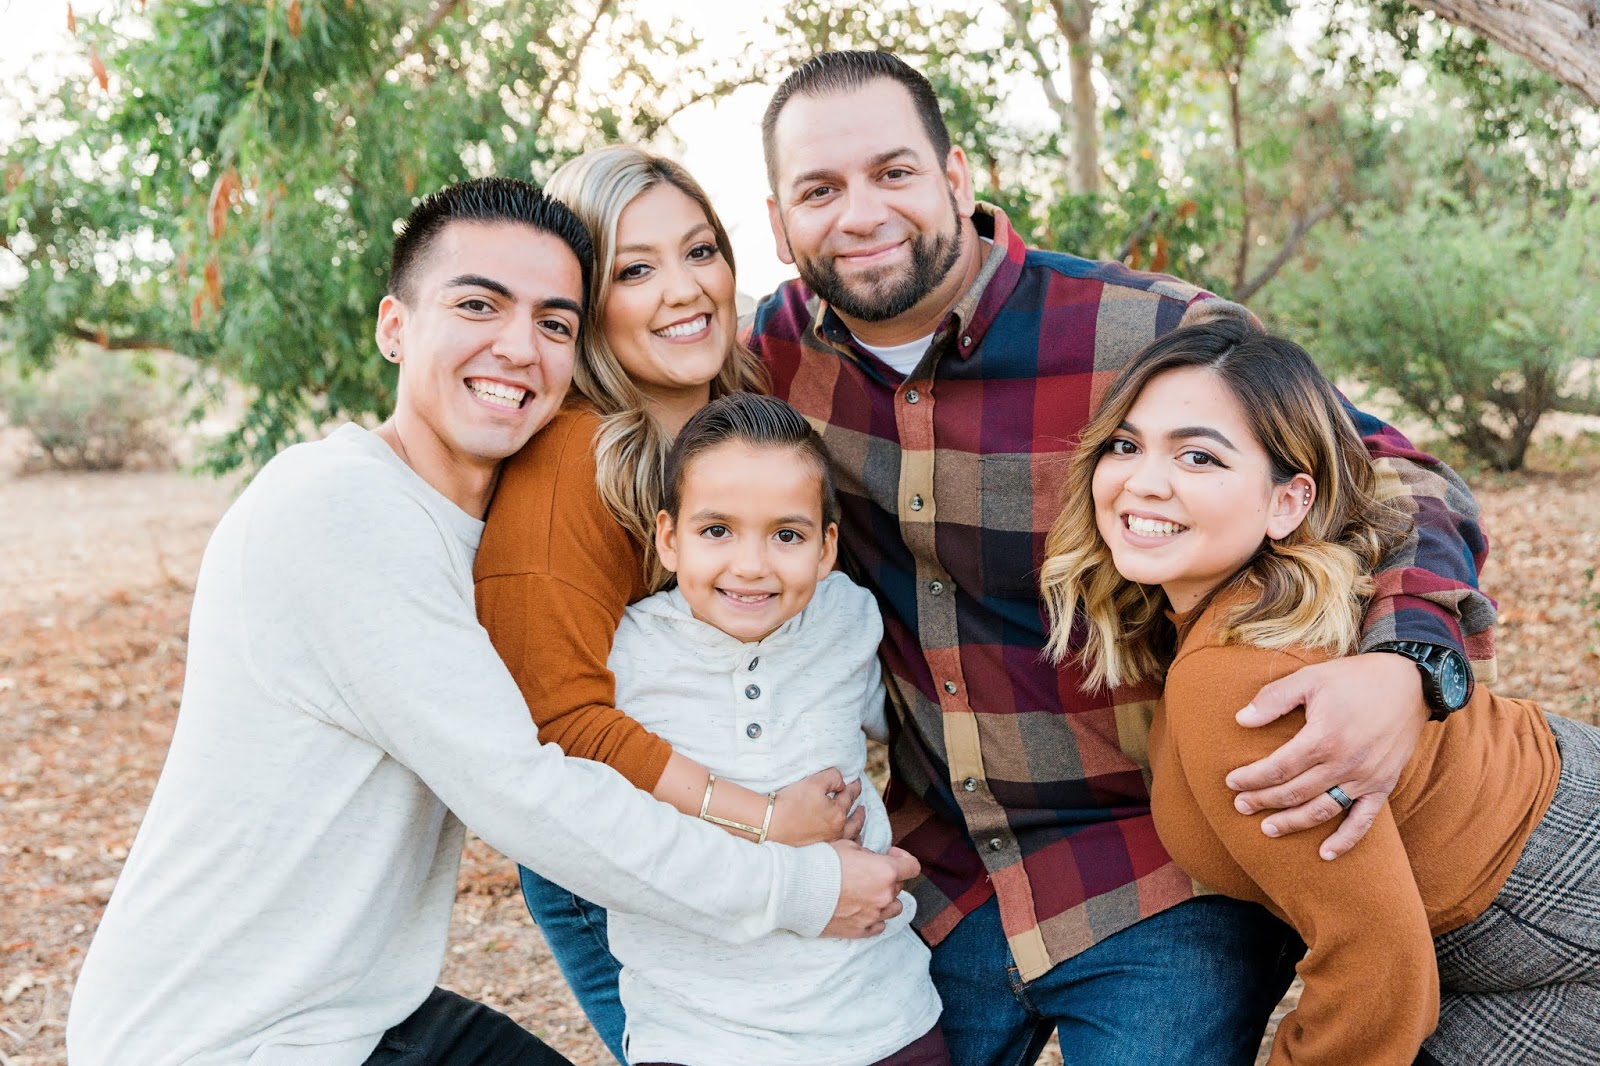 Family: The Gonzales Family {Fall Mini}   Your Life, Your Story